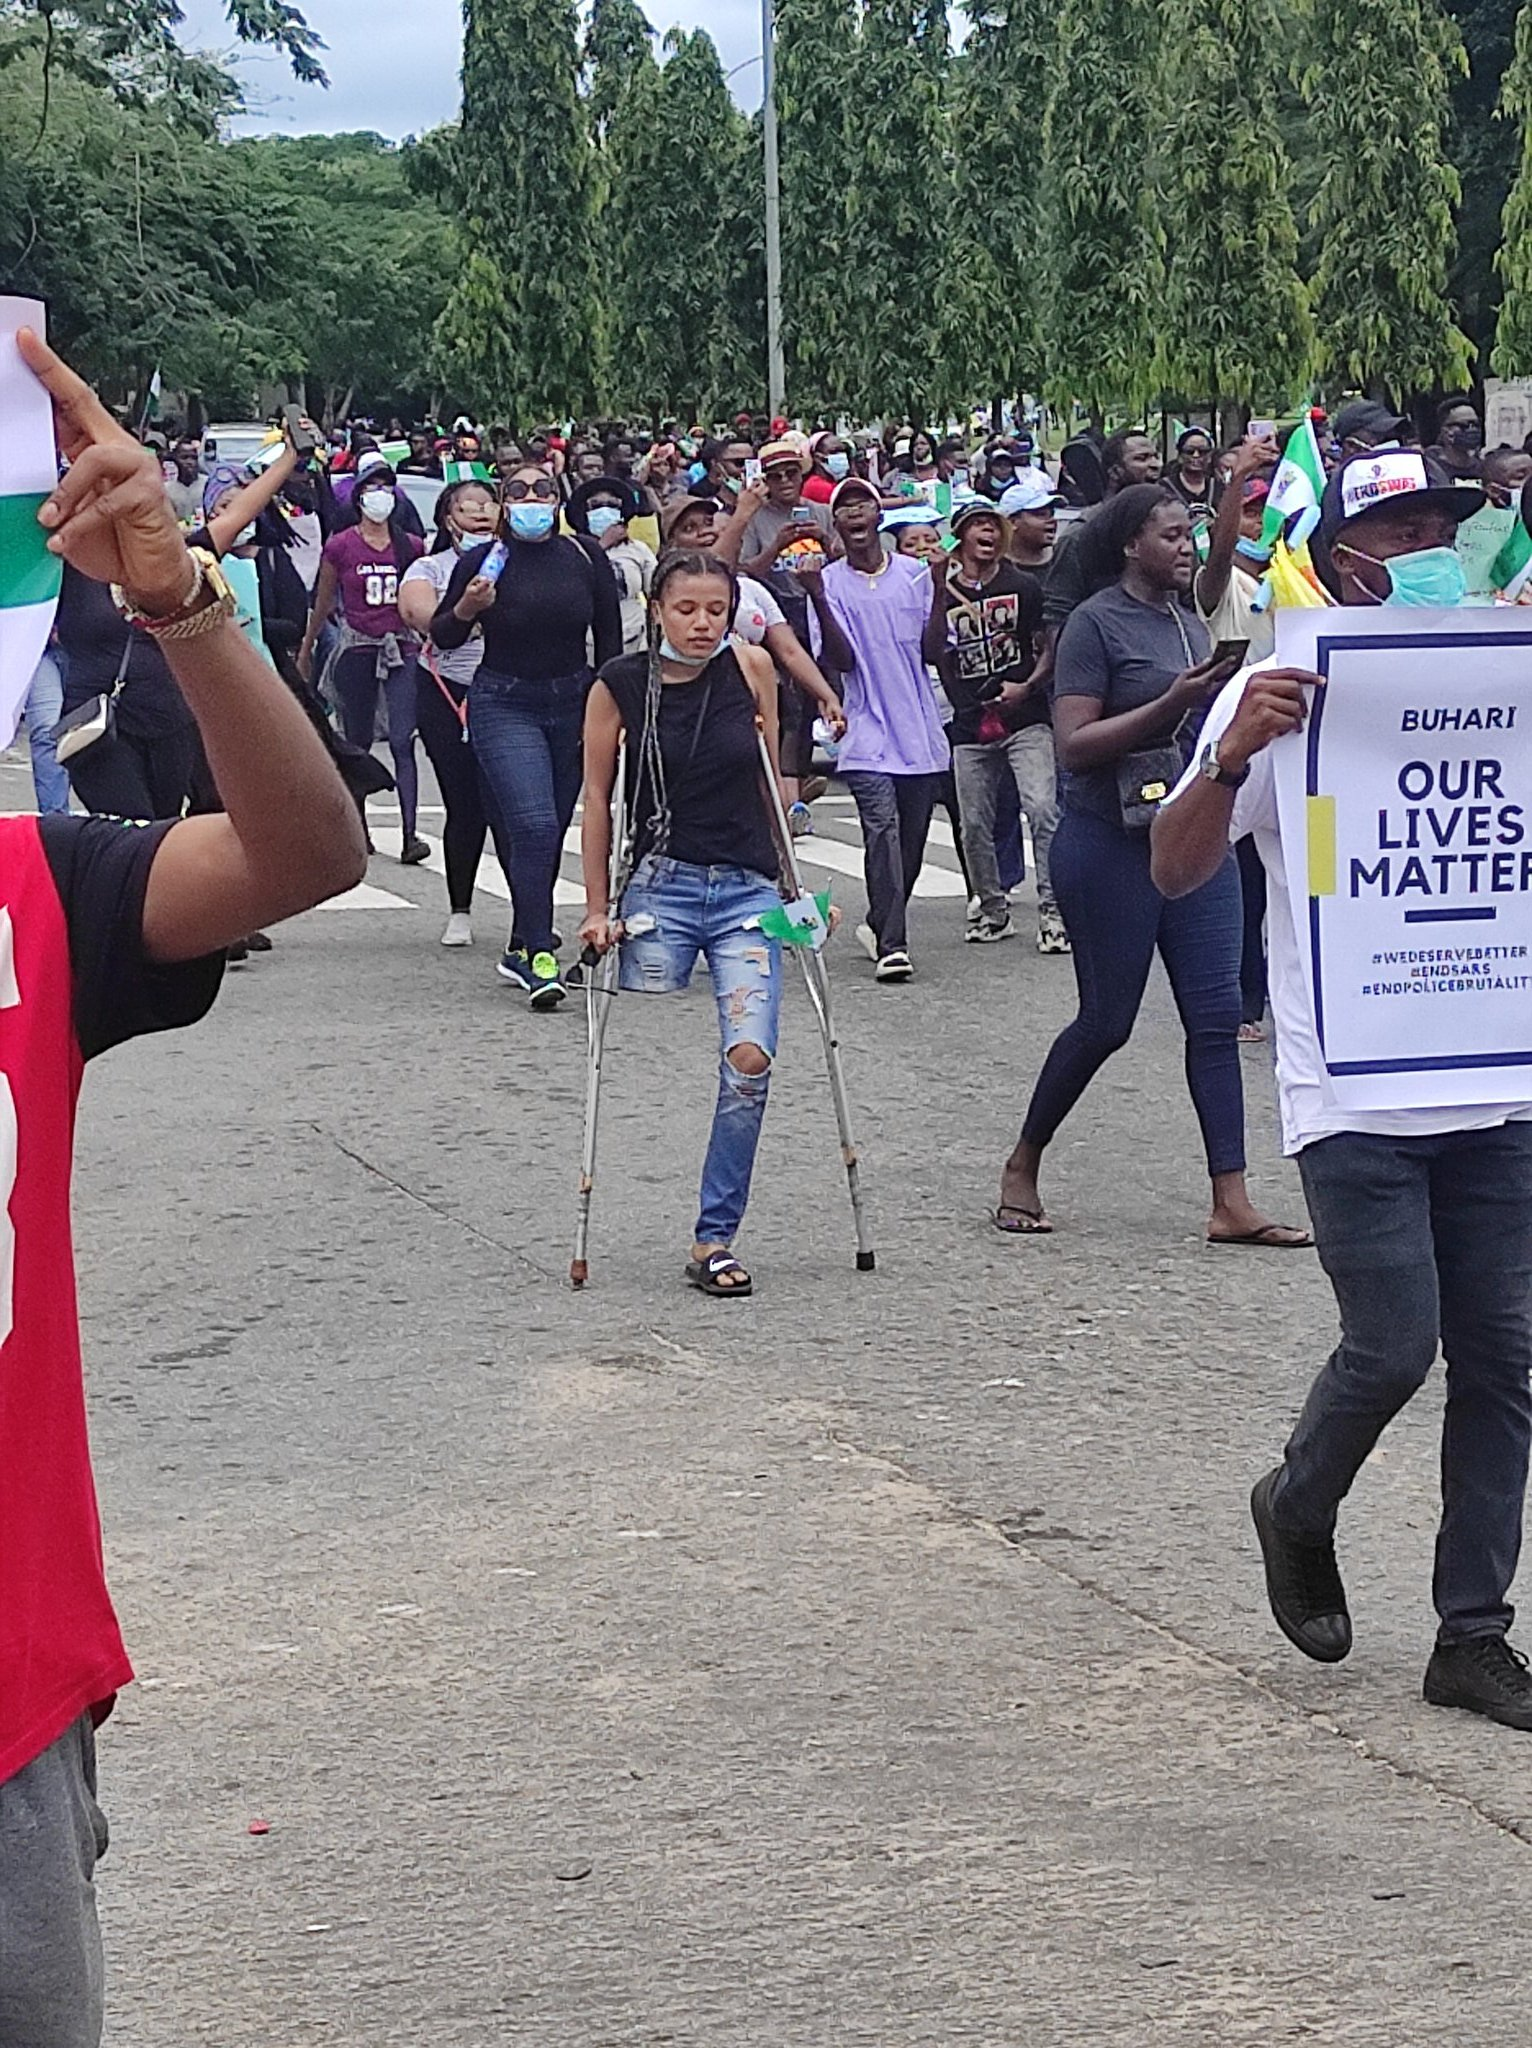 Nigeria youths donate N4.1 million to buy Prosthetic leg for a  Protester